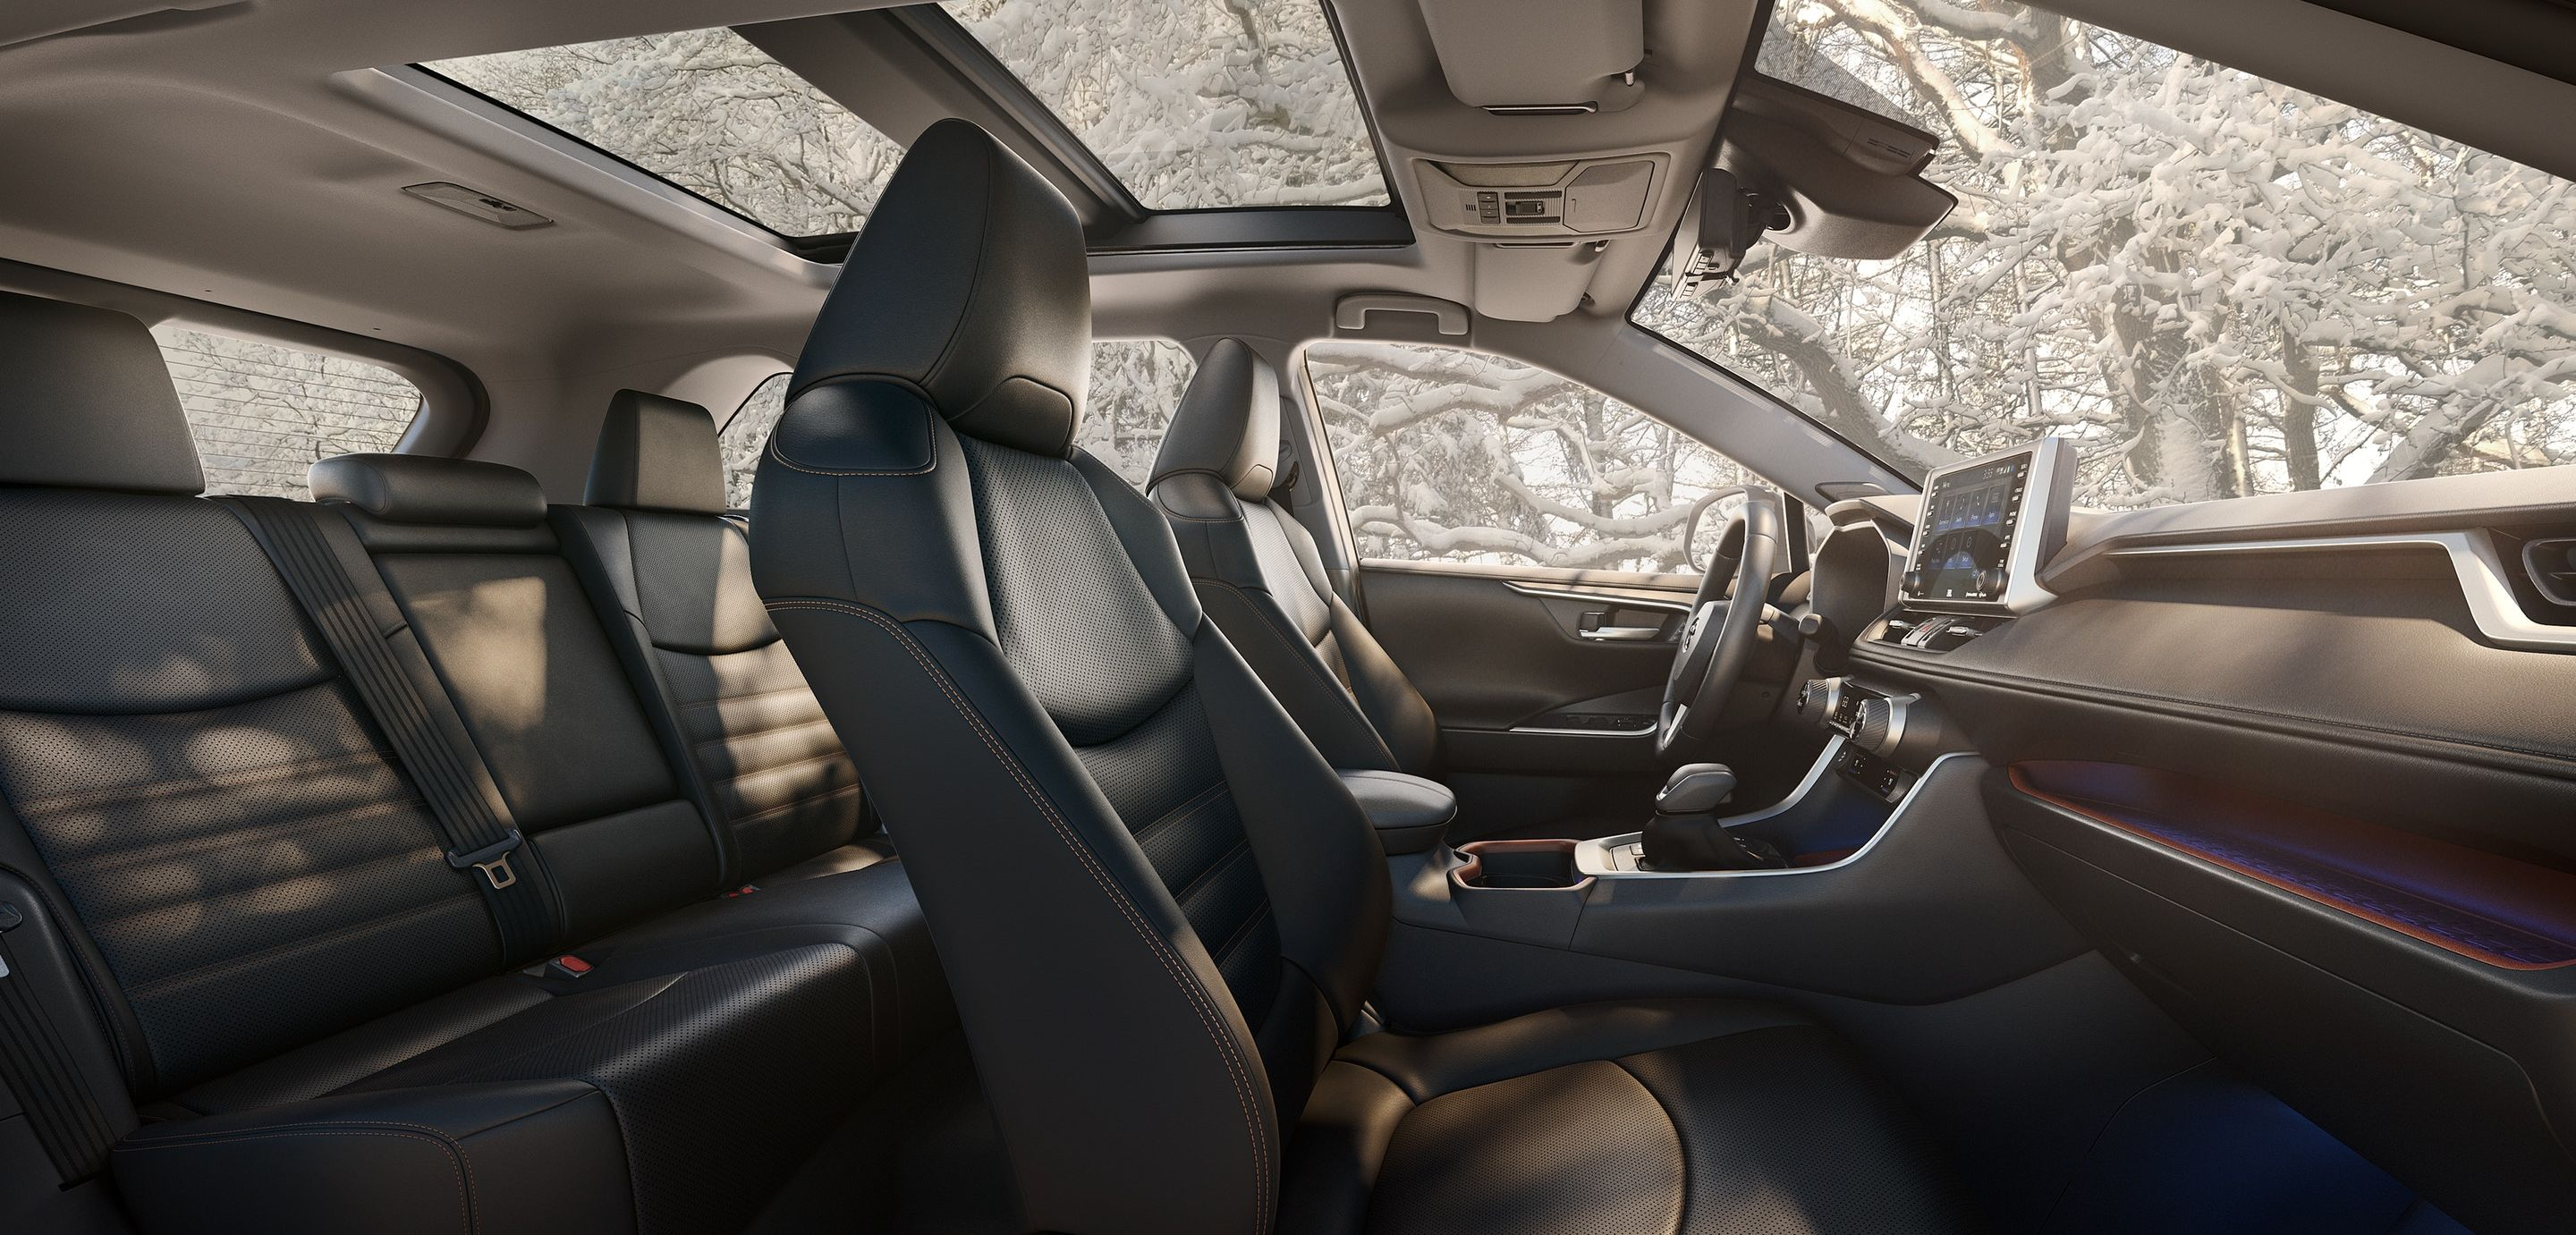 The Spacious Interior of the RAV4